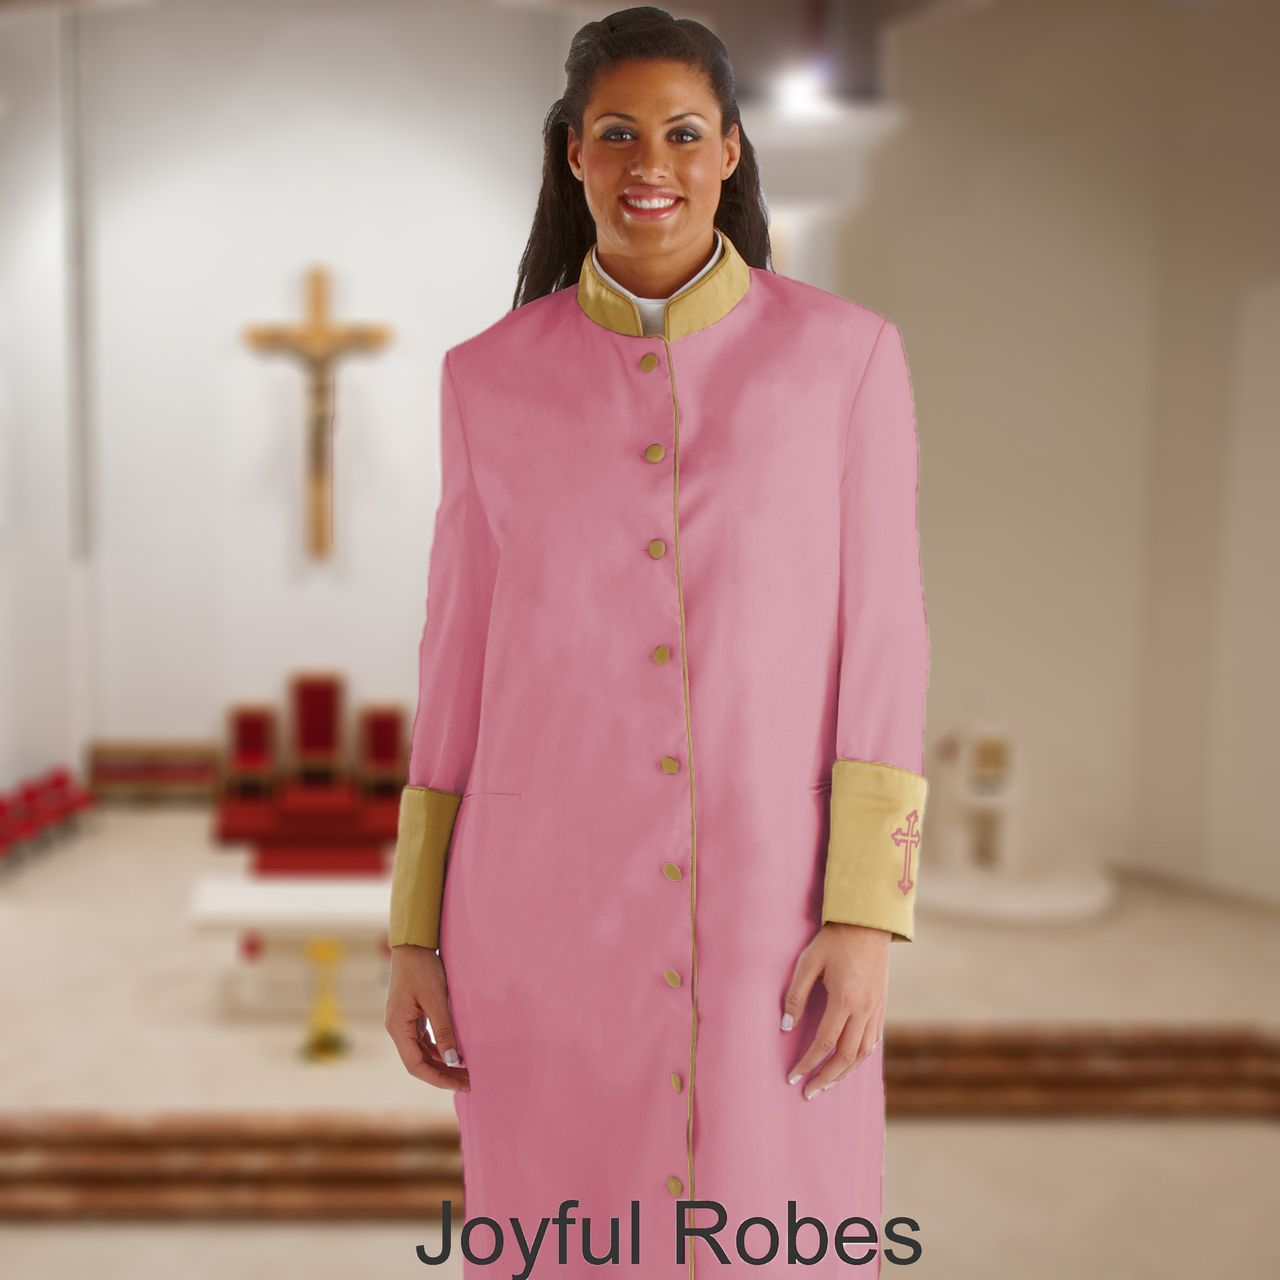 312 W. Women's Clergy/Pastor Robe Rose/Gold Cuff